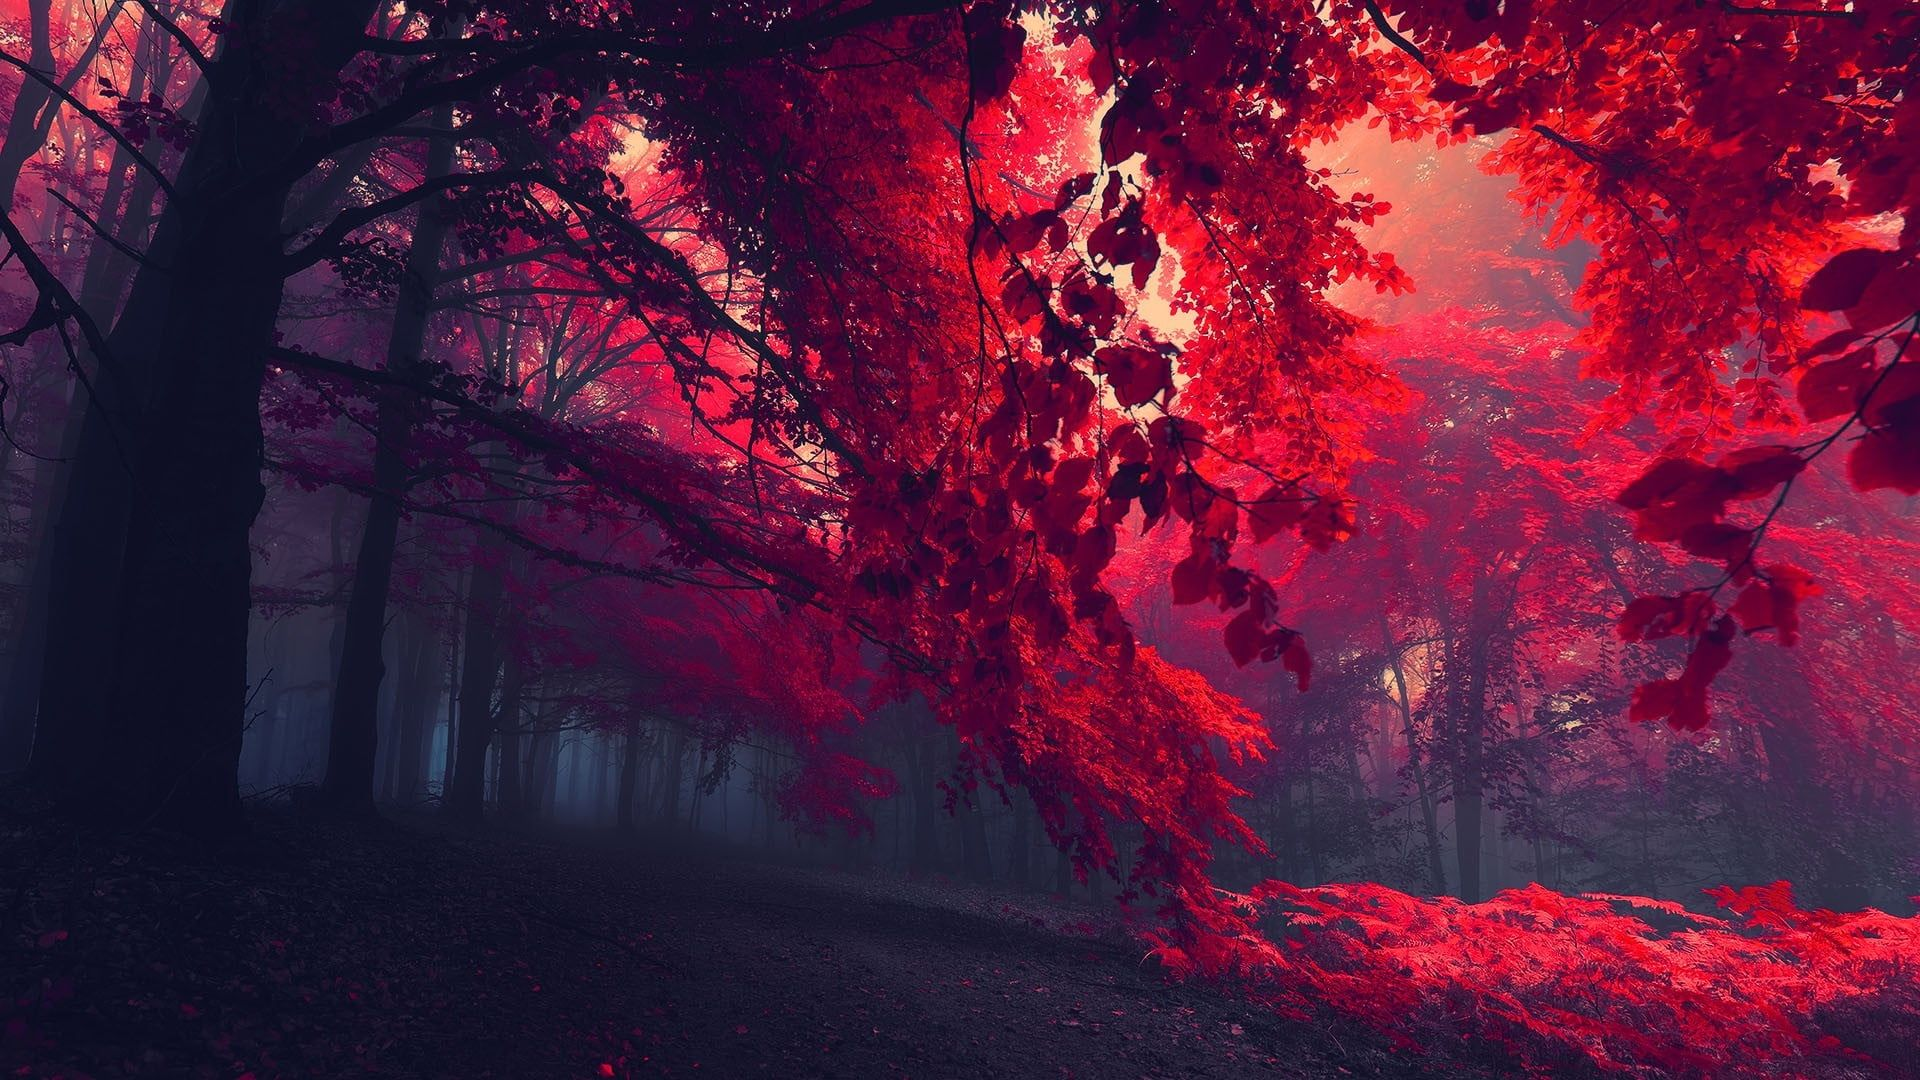 Black And Red Trees Sun Rays Through Red Trees Dark Red Nature Forest Trees Red Leaves Mist In 2020 Tree Hd Wallpaper Nature Wallpaper Autumn Leaves Wallpaper